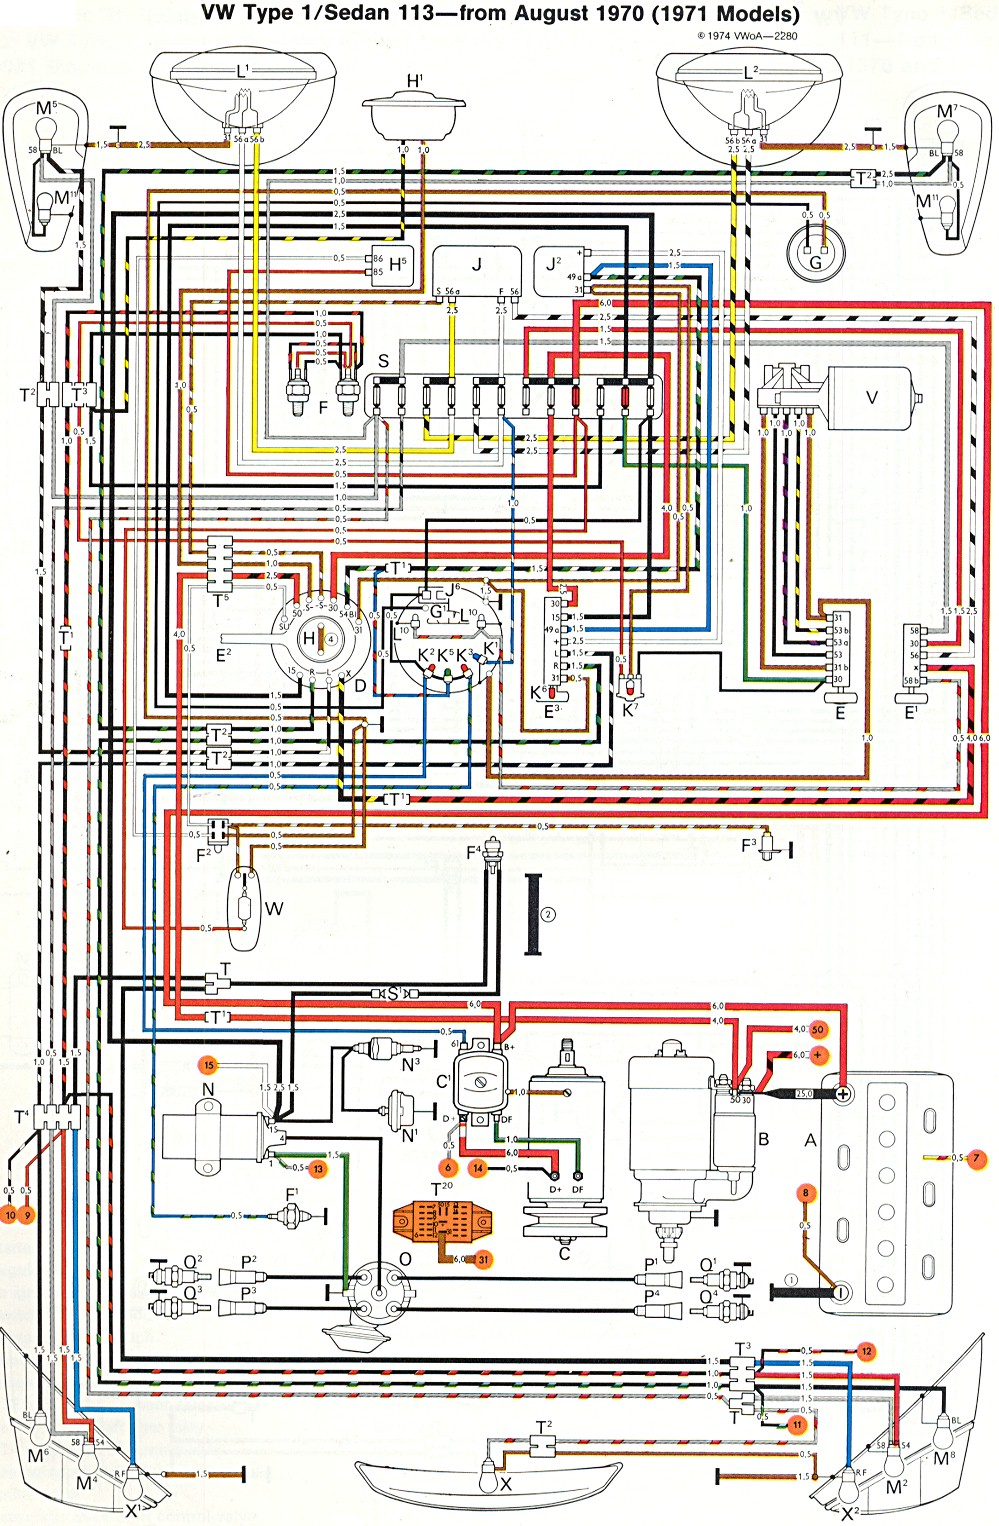 bug_super_71 1971 super beetle wiring diagram thegoldenbug com vw beetle wiring diagram at creativeand.co